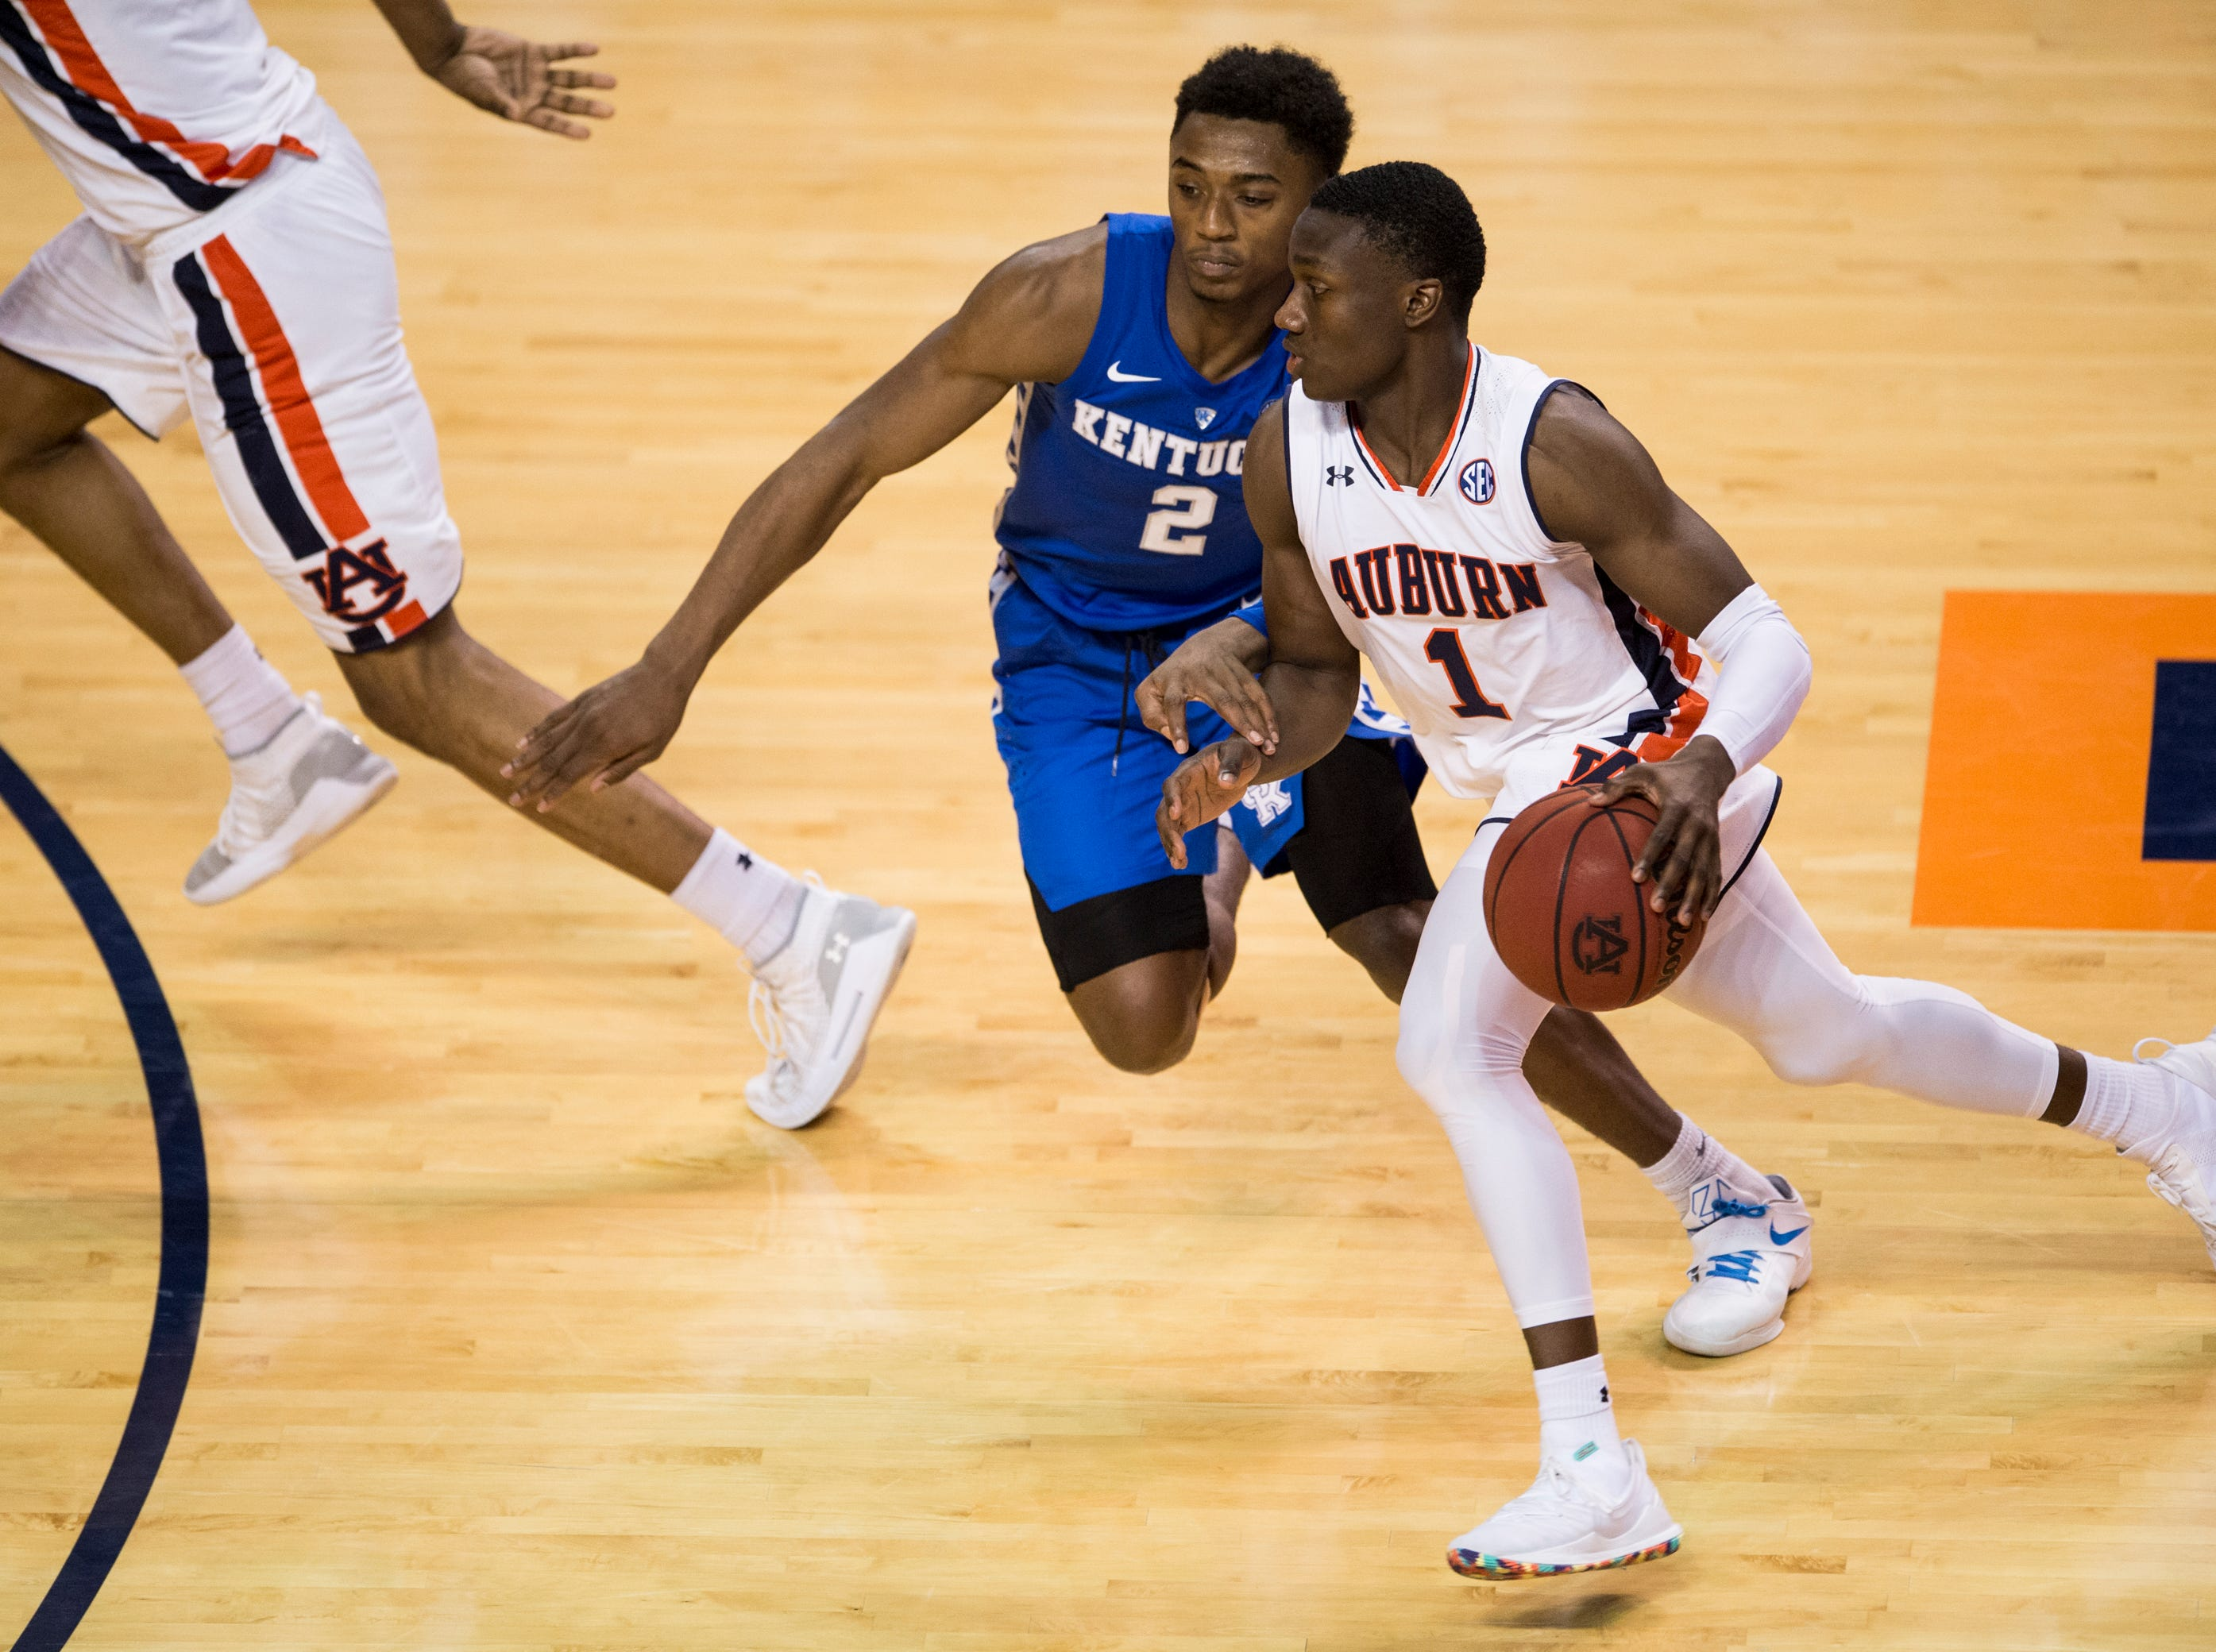 Auburn guard Jared Harper (1) drives to the basket on Kentucky guard Ashton Hagans (2) at Auburn Arena in Auburn, Ala., on Saturday, Jan. 19, 2019. Kentucky defeats Auburn 82-80.